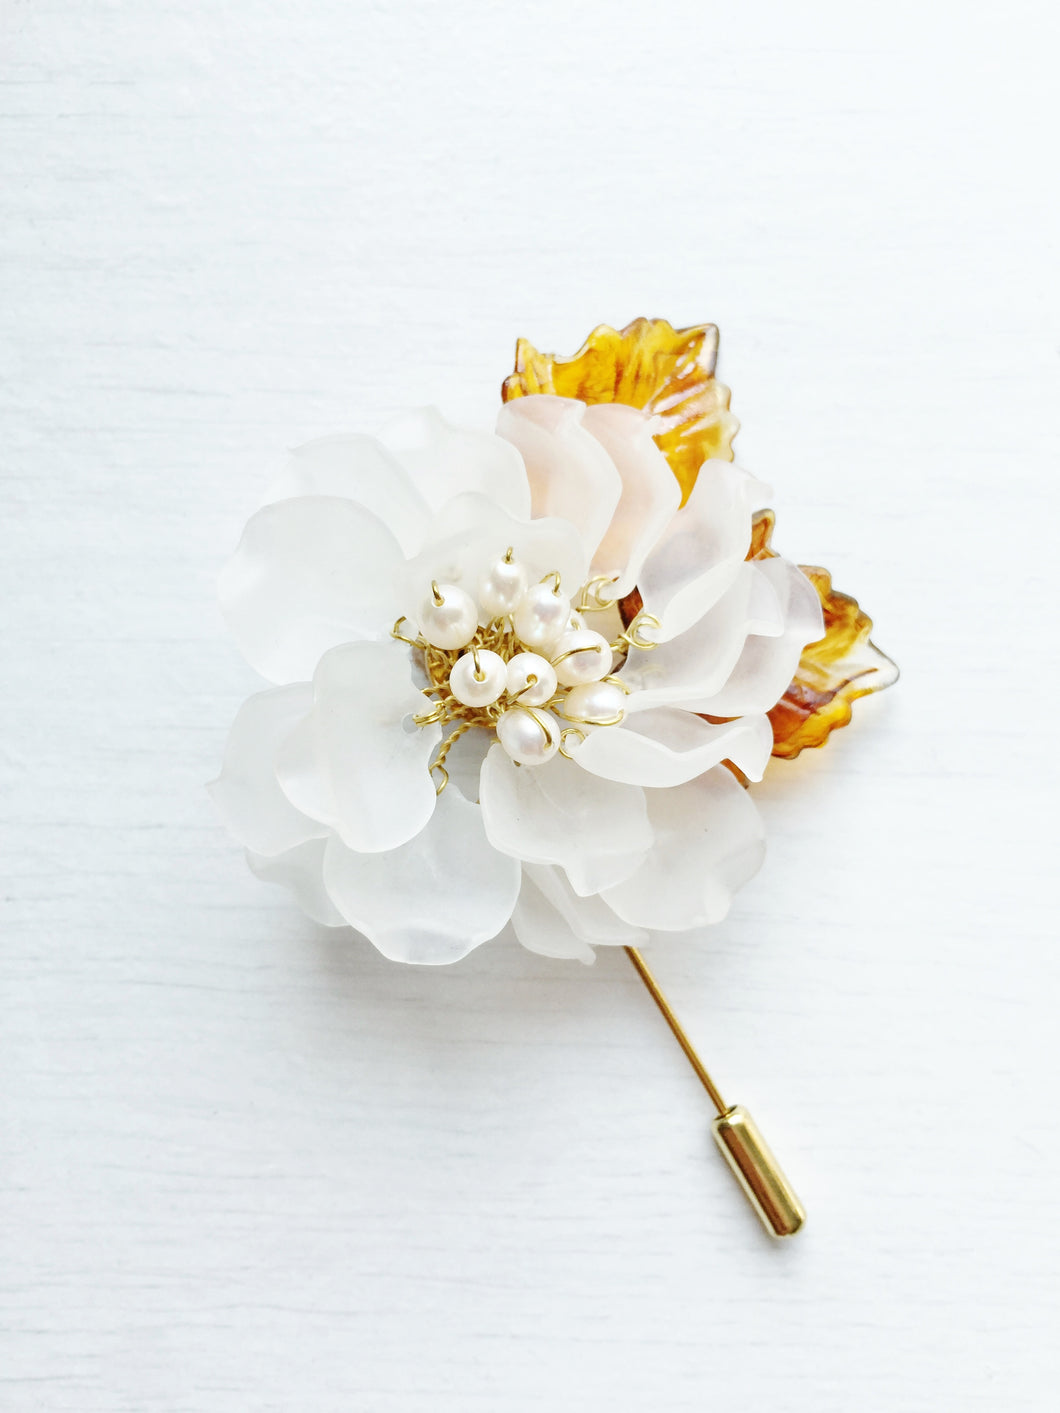 Peony Pin in White Frosted Petals and White Freshwater Pearls